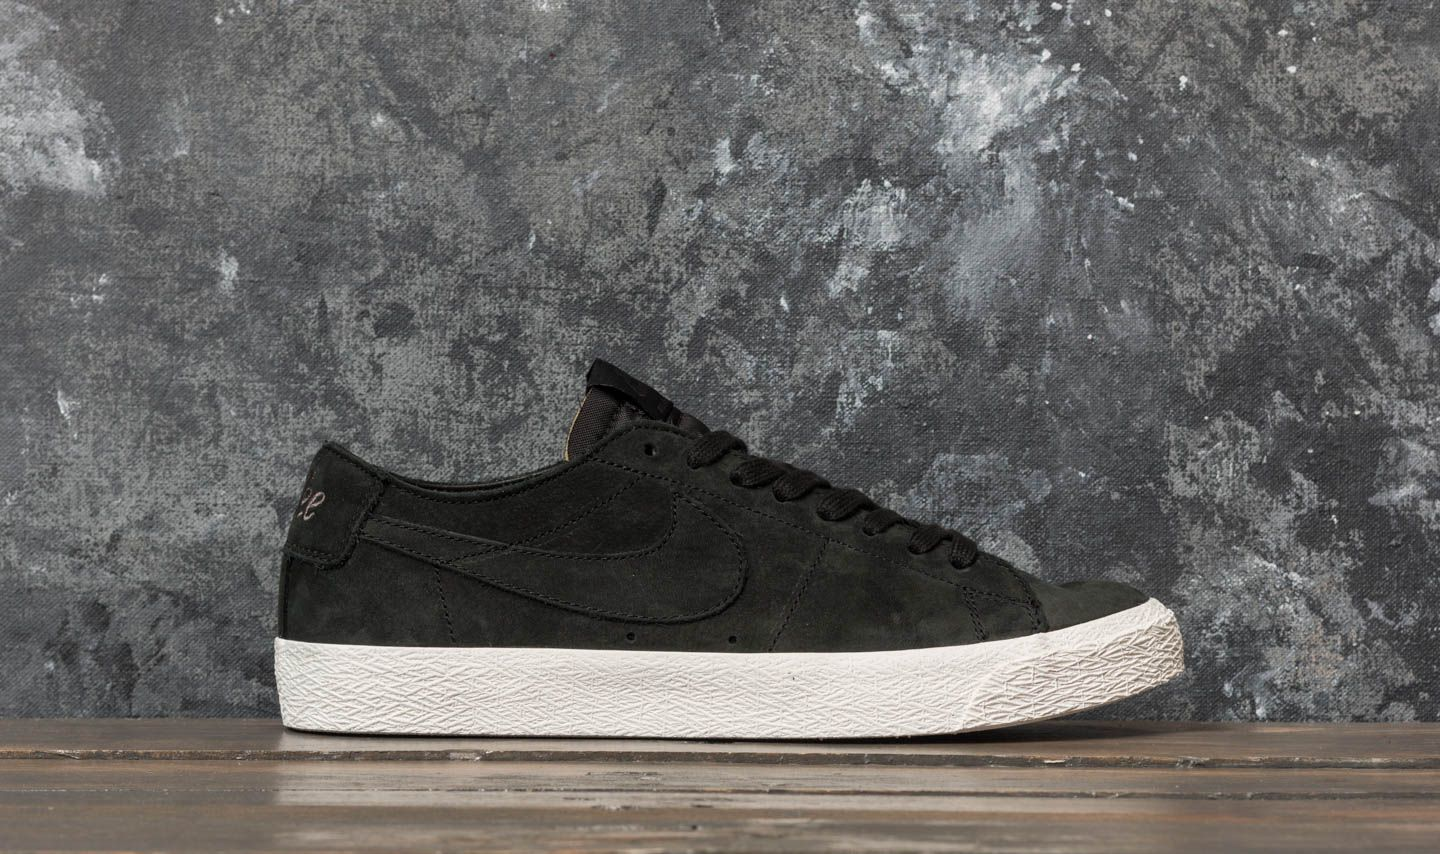 newest collection a8654 9ac5a Nike SB Zoom Blazer Low Decon Black Black-Anthracite at a great price 99